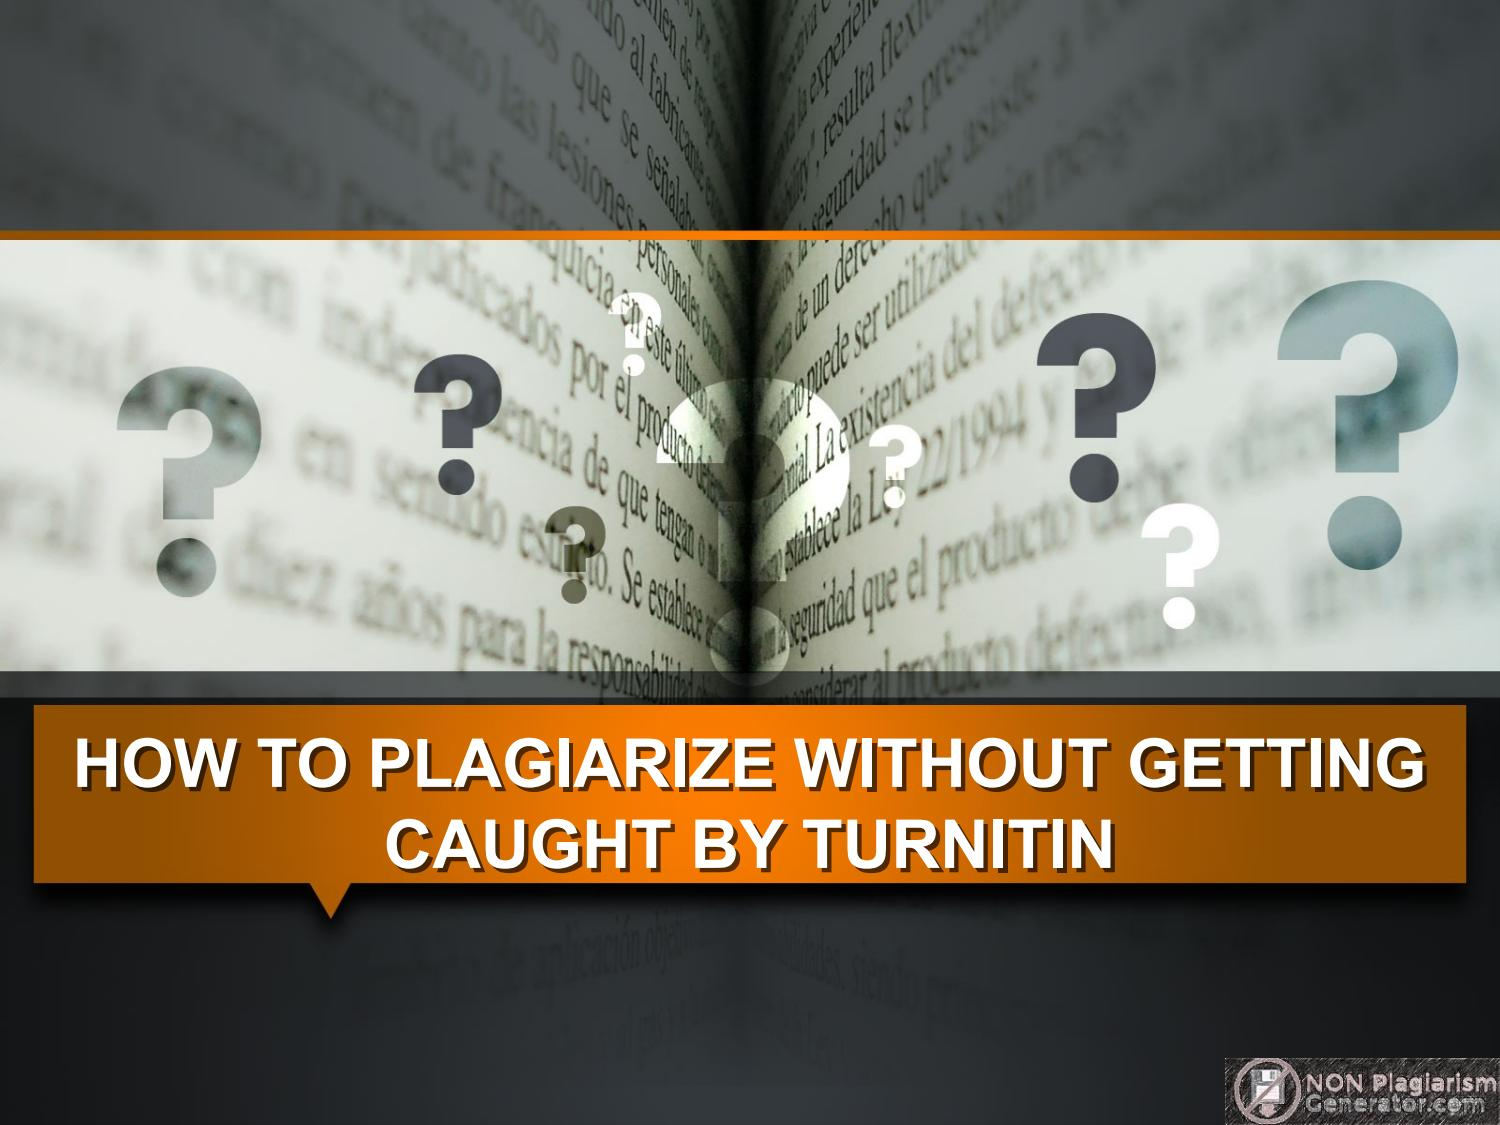 how to plagiarize out getting caught by turnitin by non how to plagiarize out getting caught by turnitin by non plagiarism generator issuu